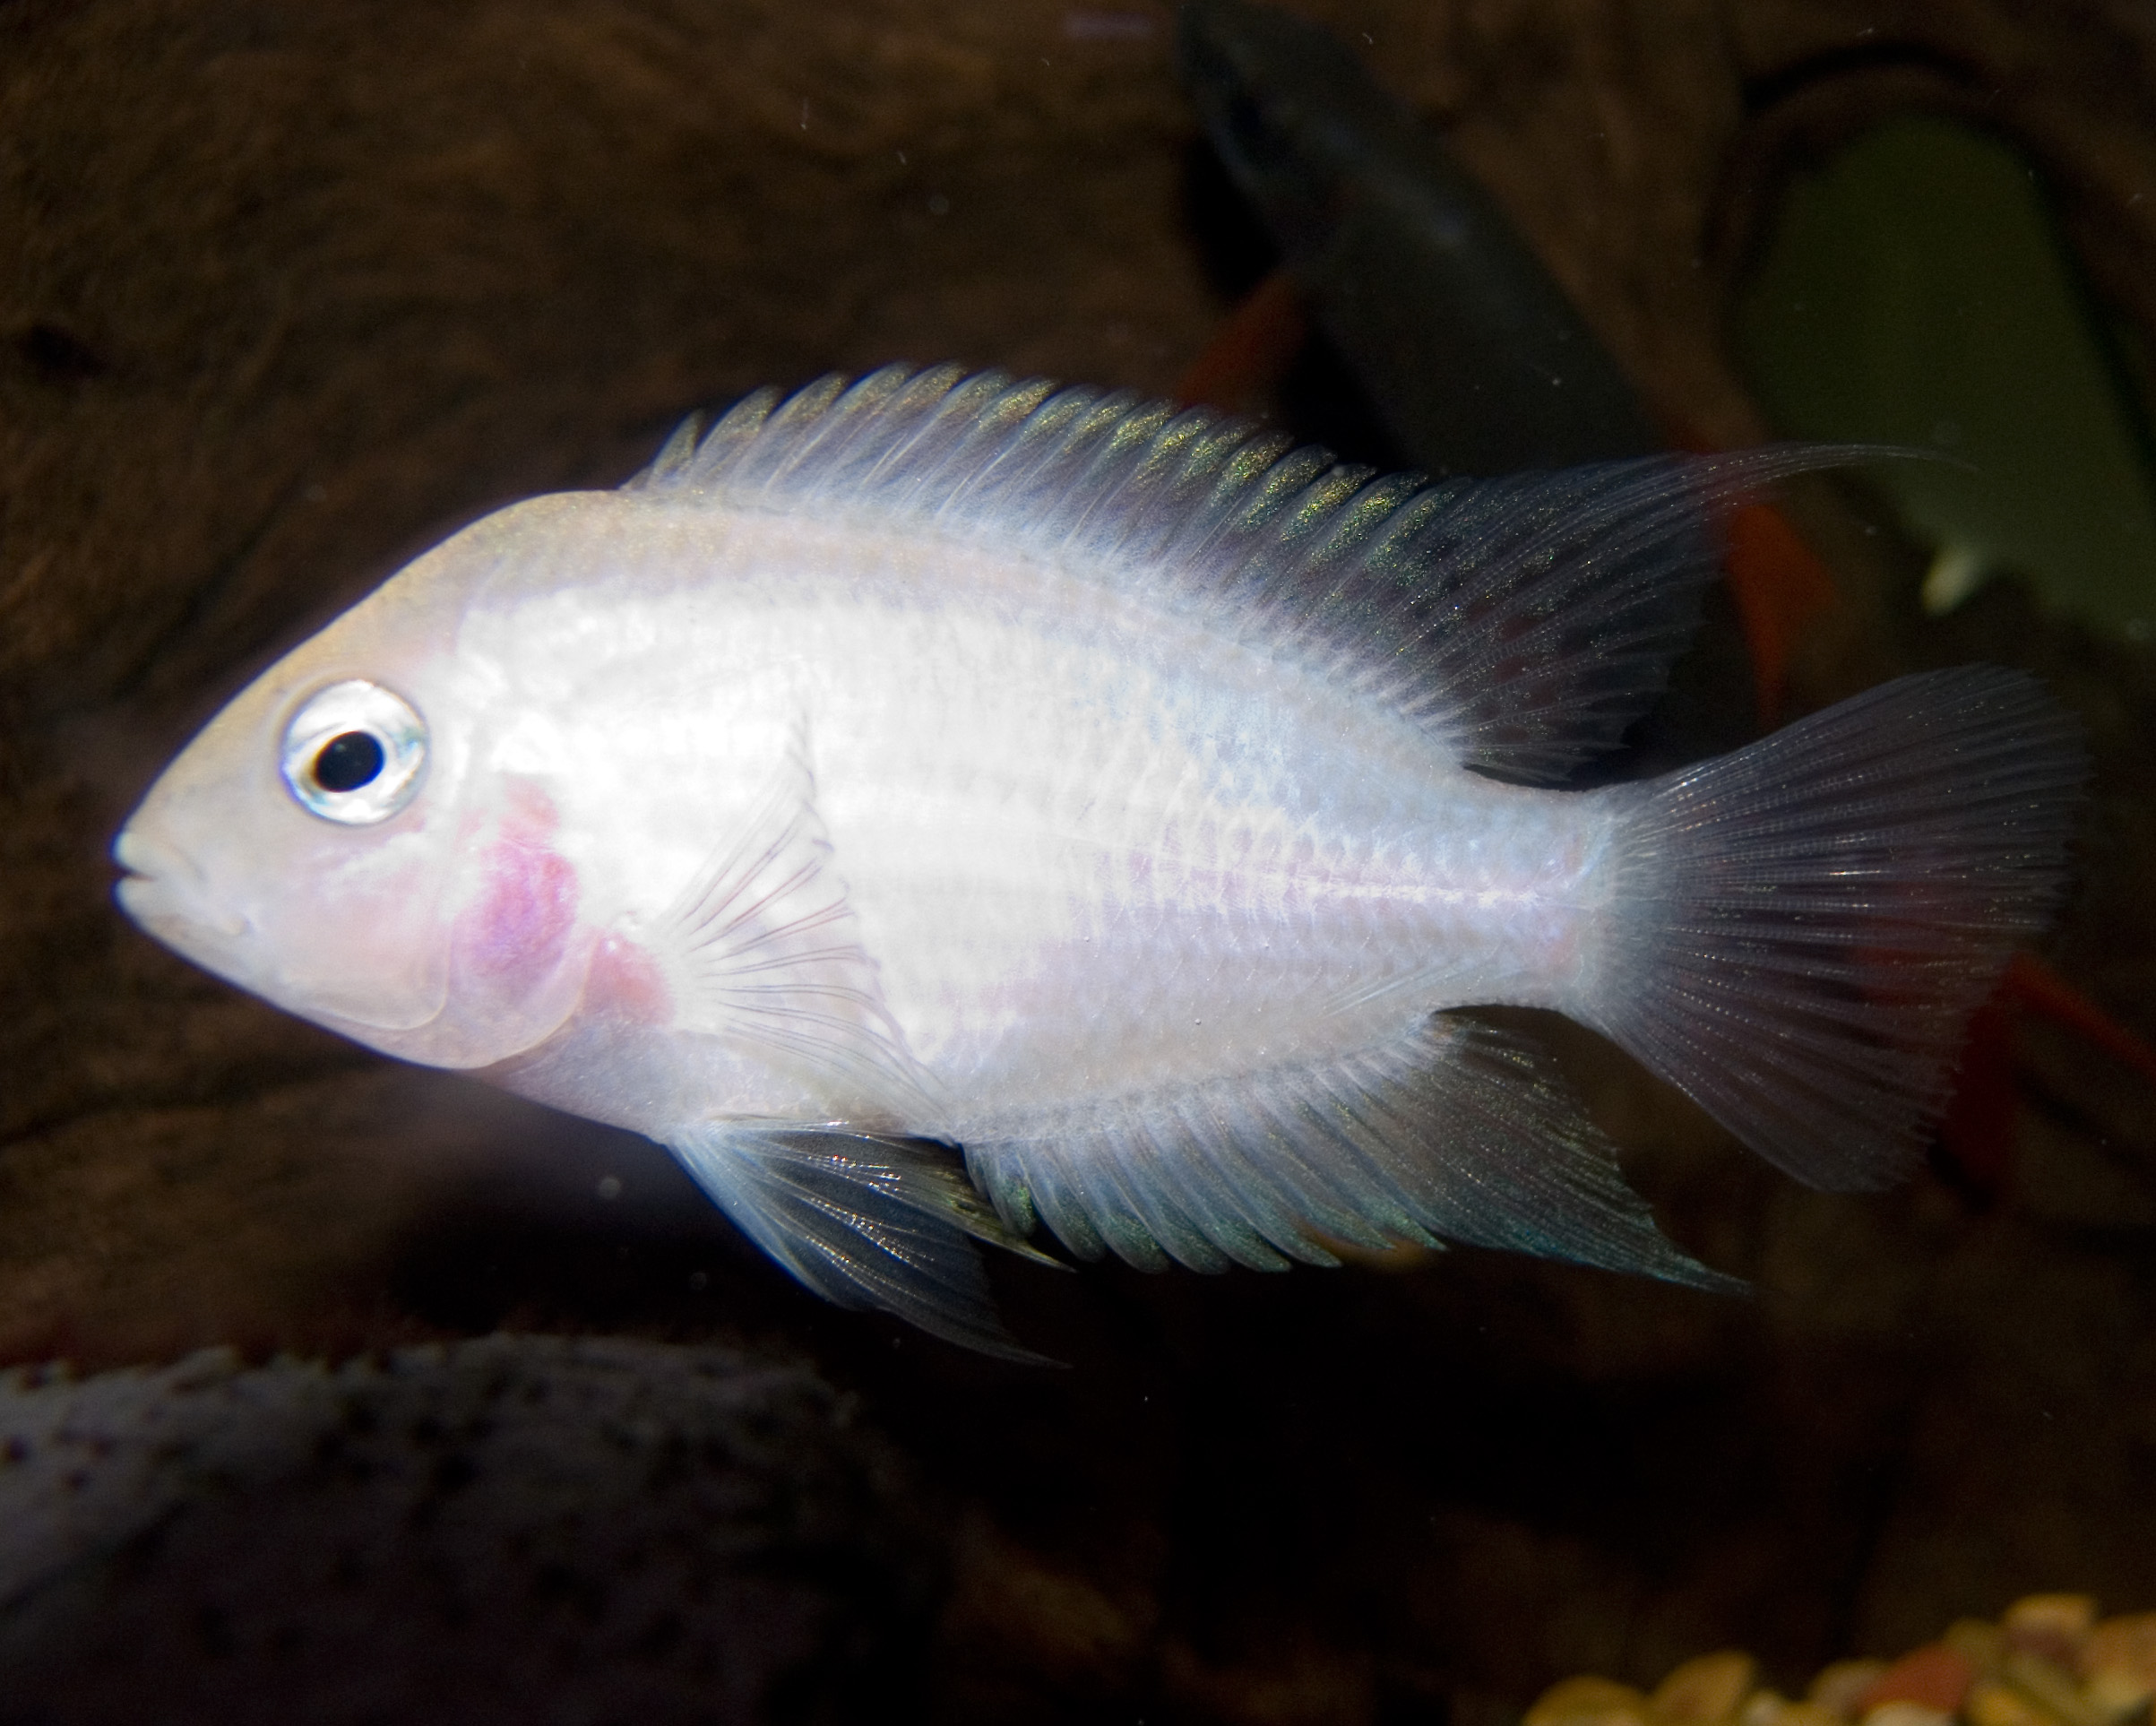 Stock Photos Long Finned Albino Oscar Fish Image990593 furthermore Types Of Oscar besides Lumpfish Cyclopterus Lumpus additionally 3089 How To Tell The Sex Of A Goldfish together with Watch. on oscar cichlid with fry